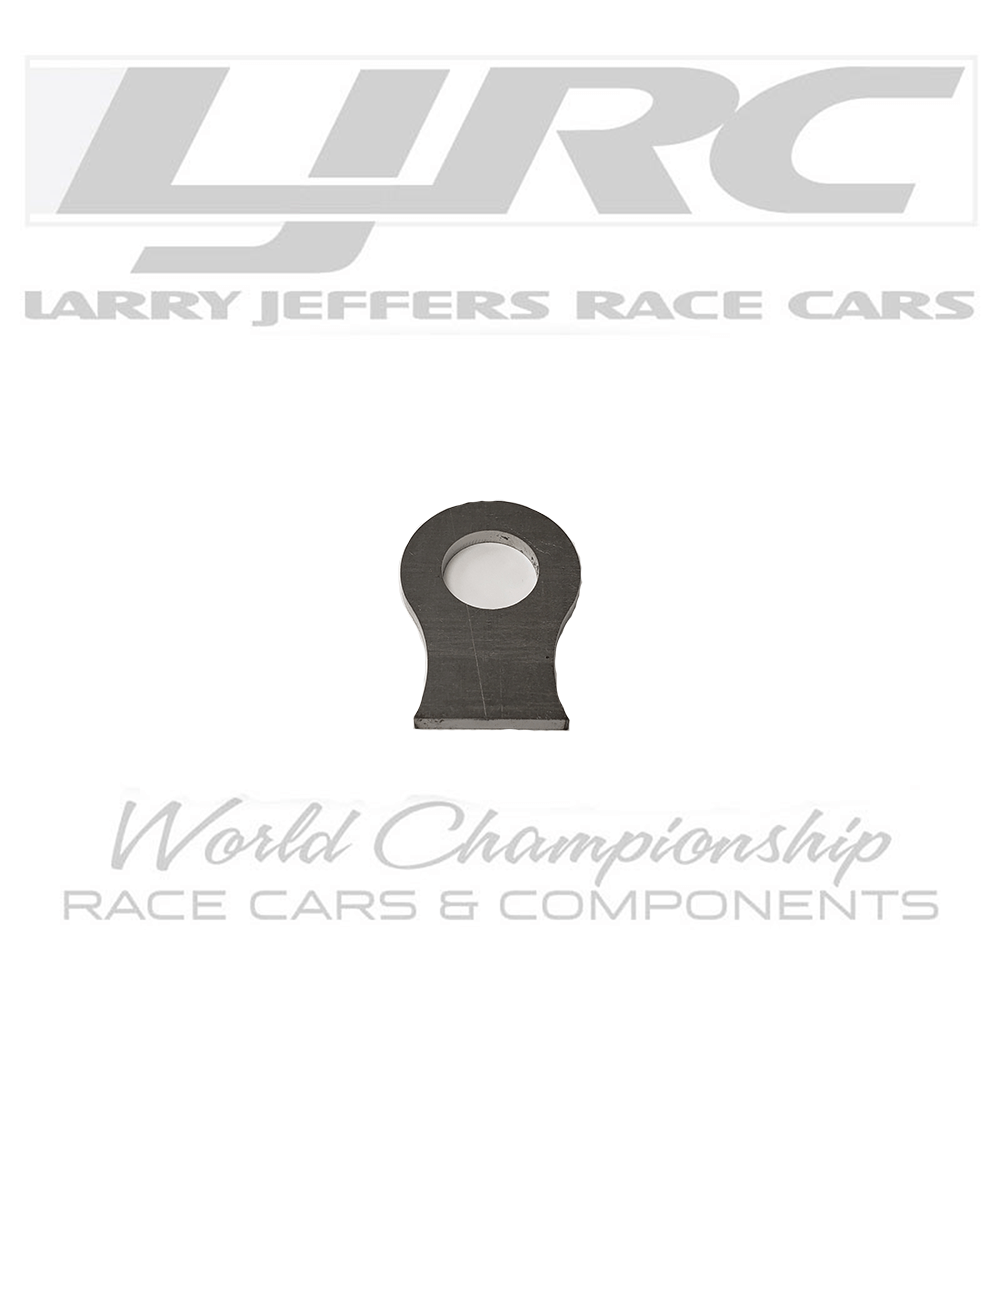 LJR-CHASSIS PAINT #1